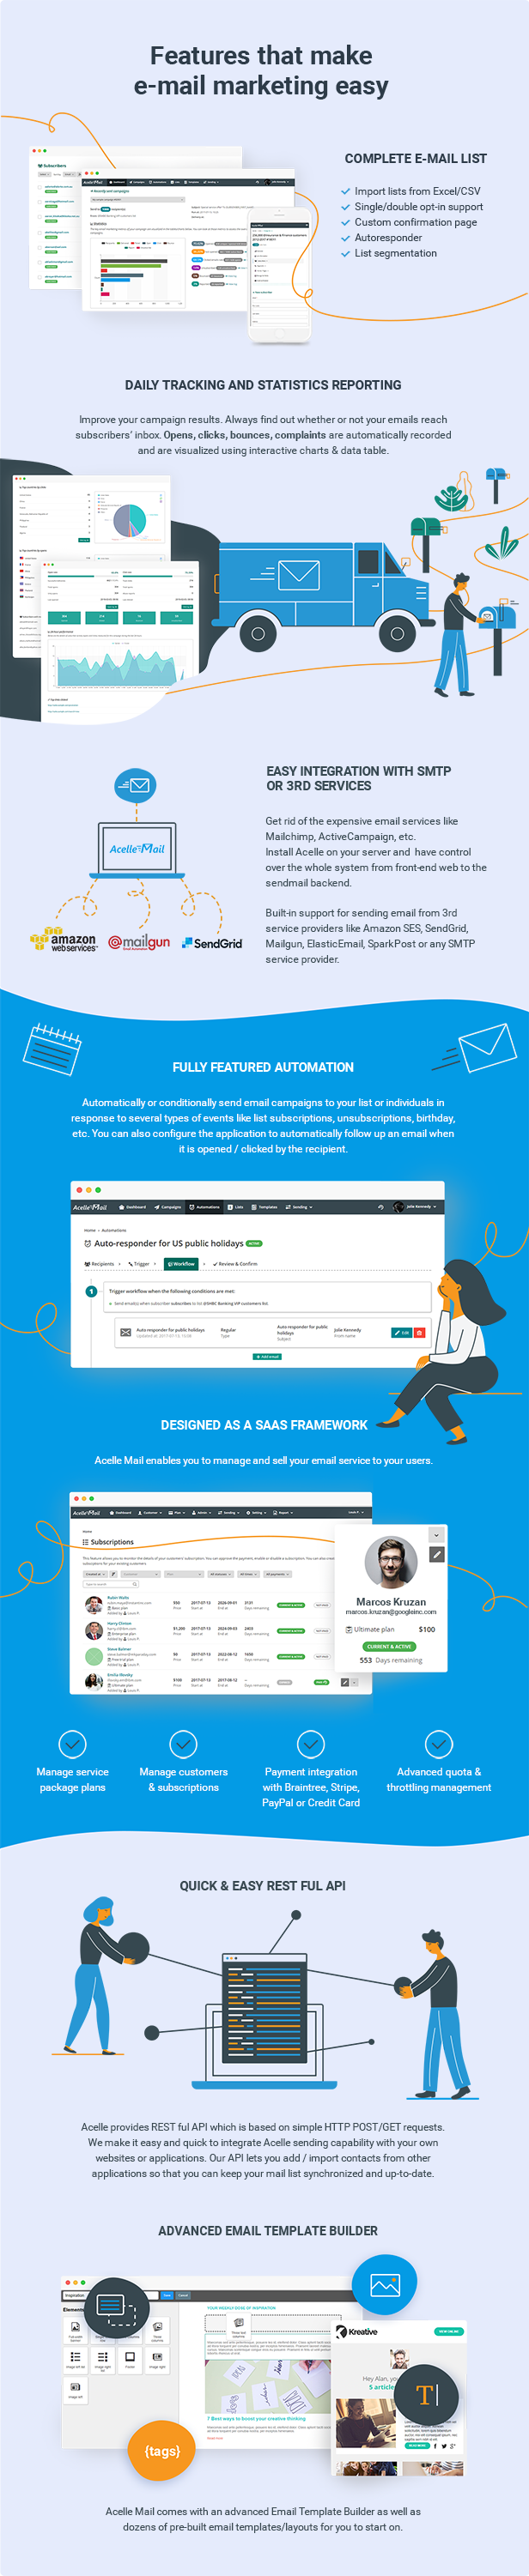 Acelle Email Marketing Web Application - 3